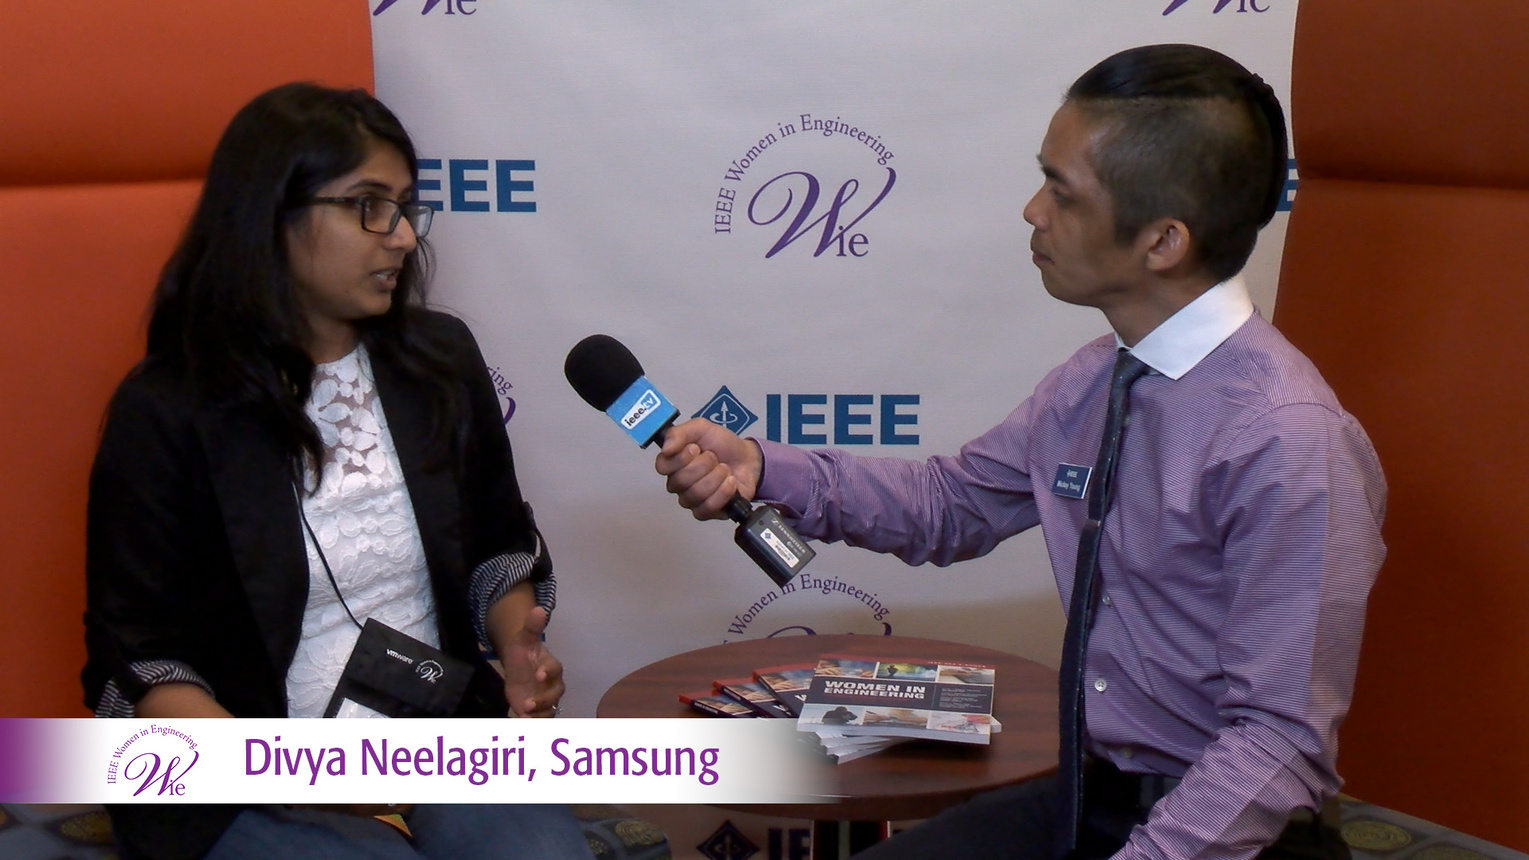 Divya Neelagiri from Samsung Research America at WIE ILC 2016